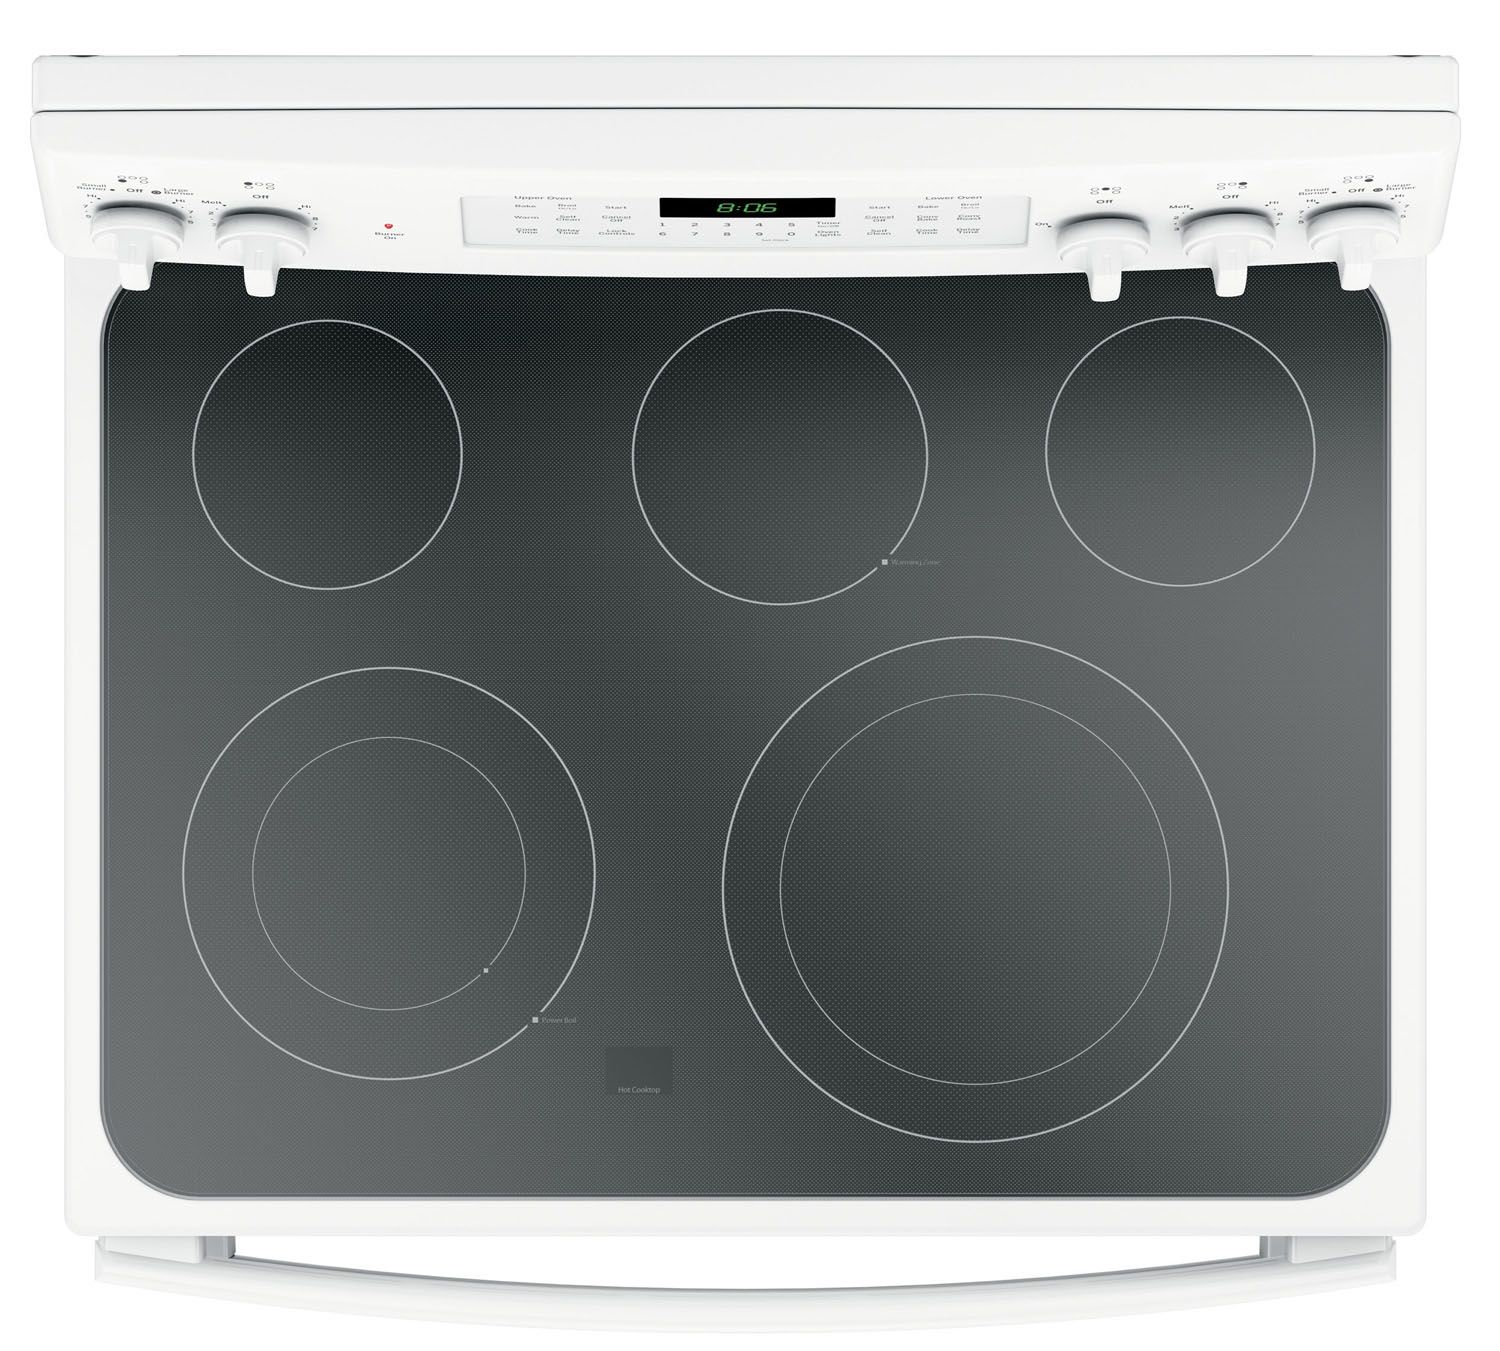 Jb Hi Fi Kitchen Appliances Ge 30 Electric Double Oven Convection Range Jb860djww